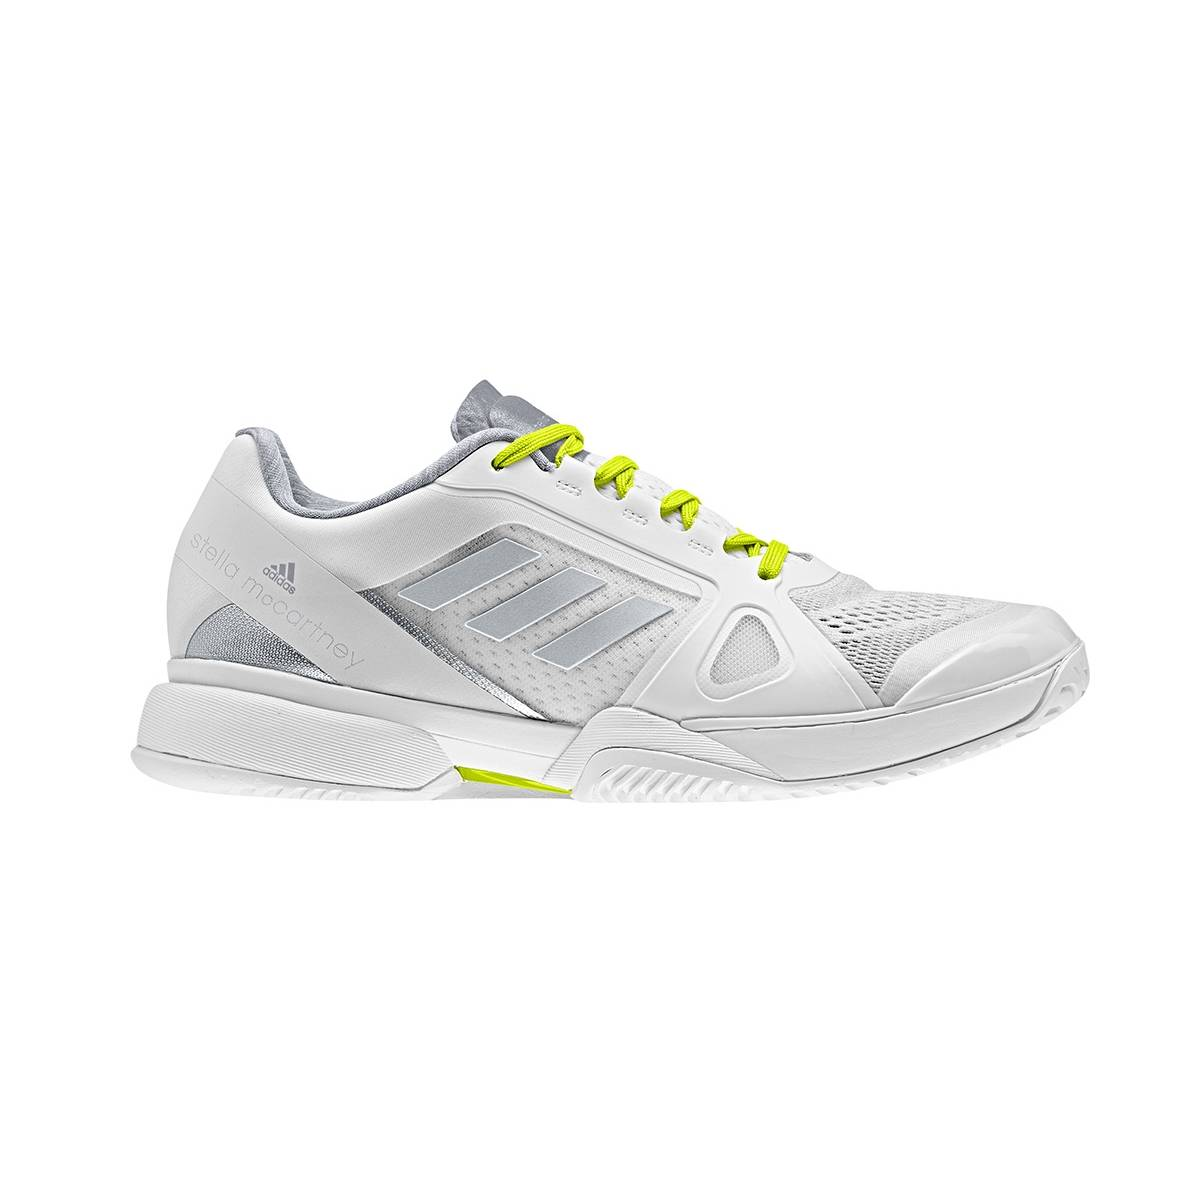 Adidas Barricade Stella Mccartney White 38